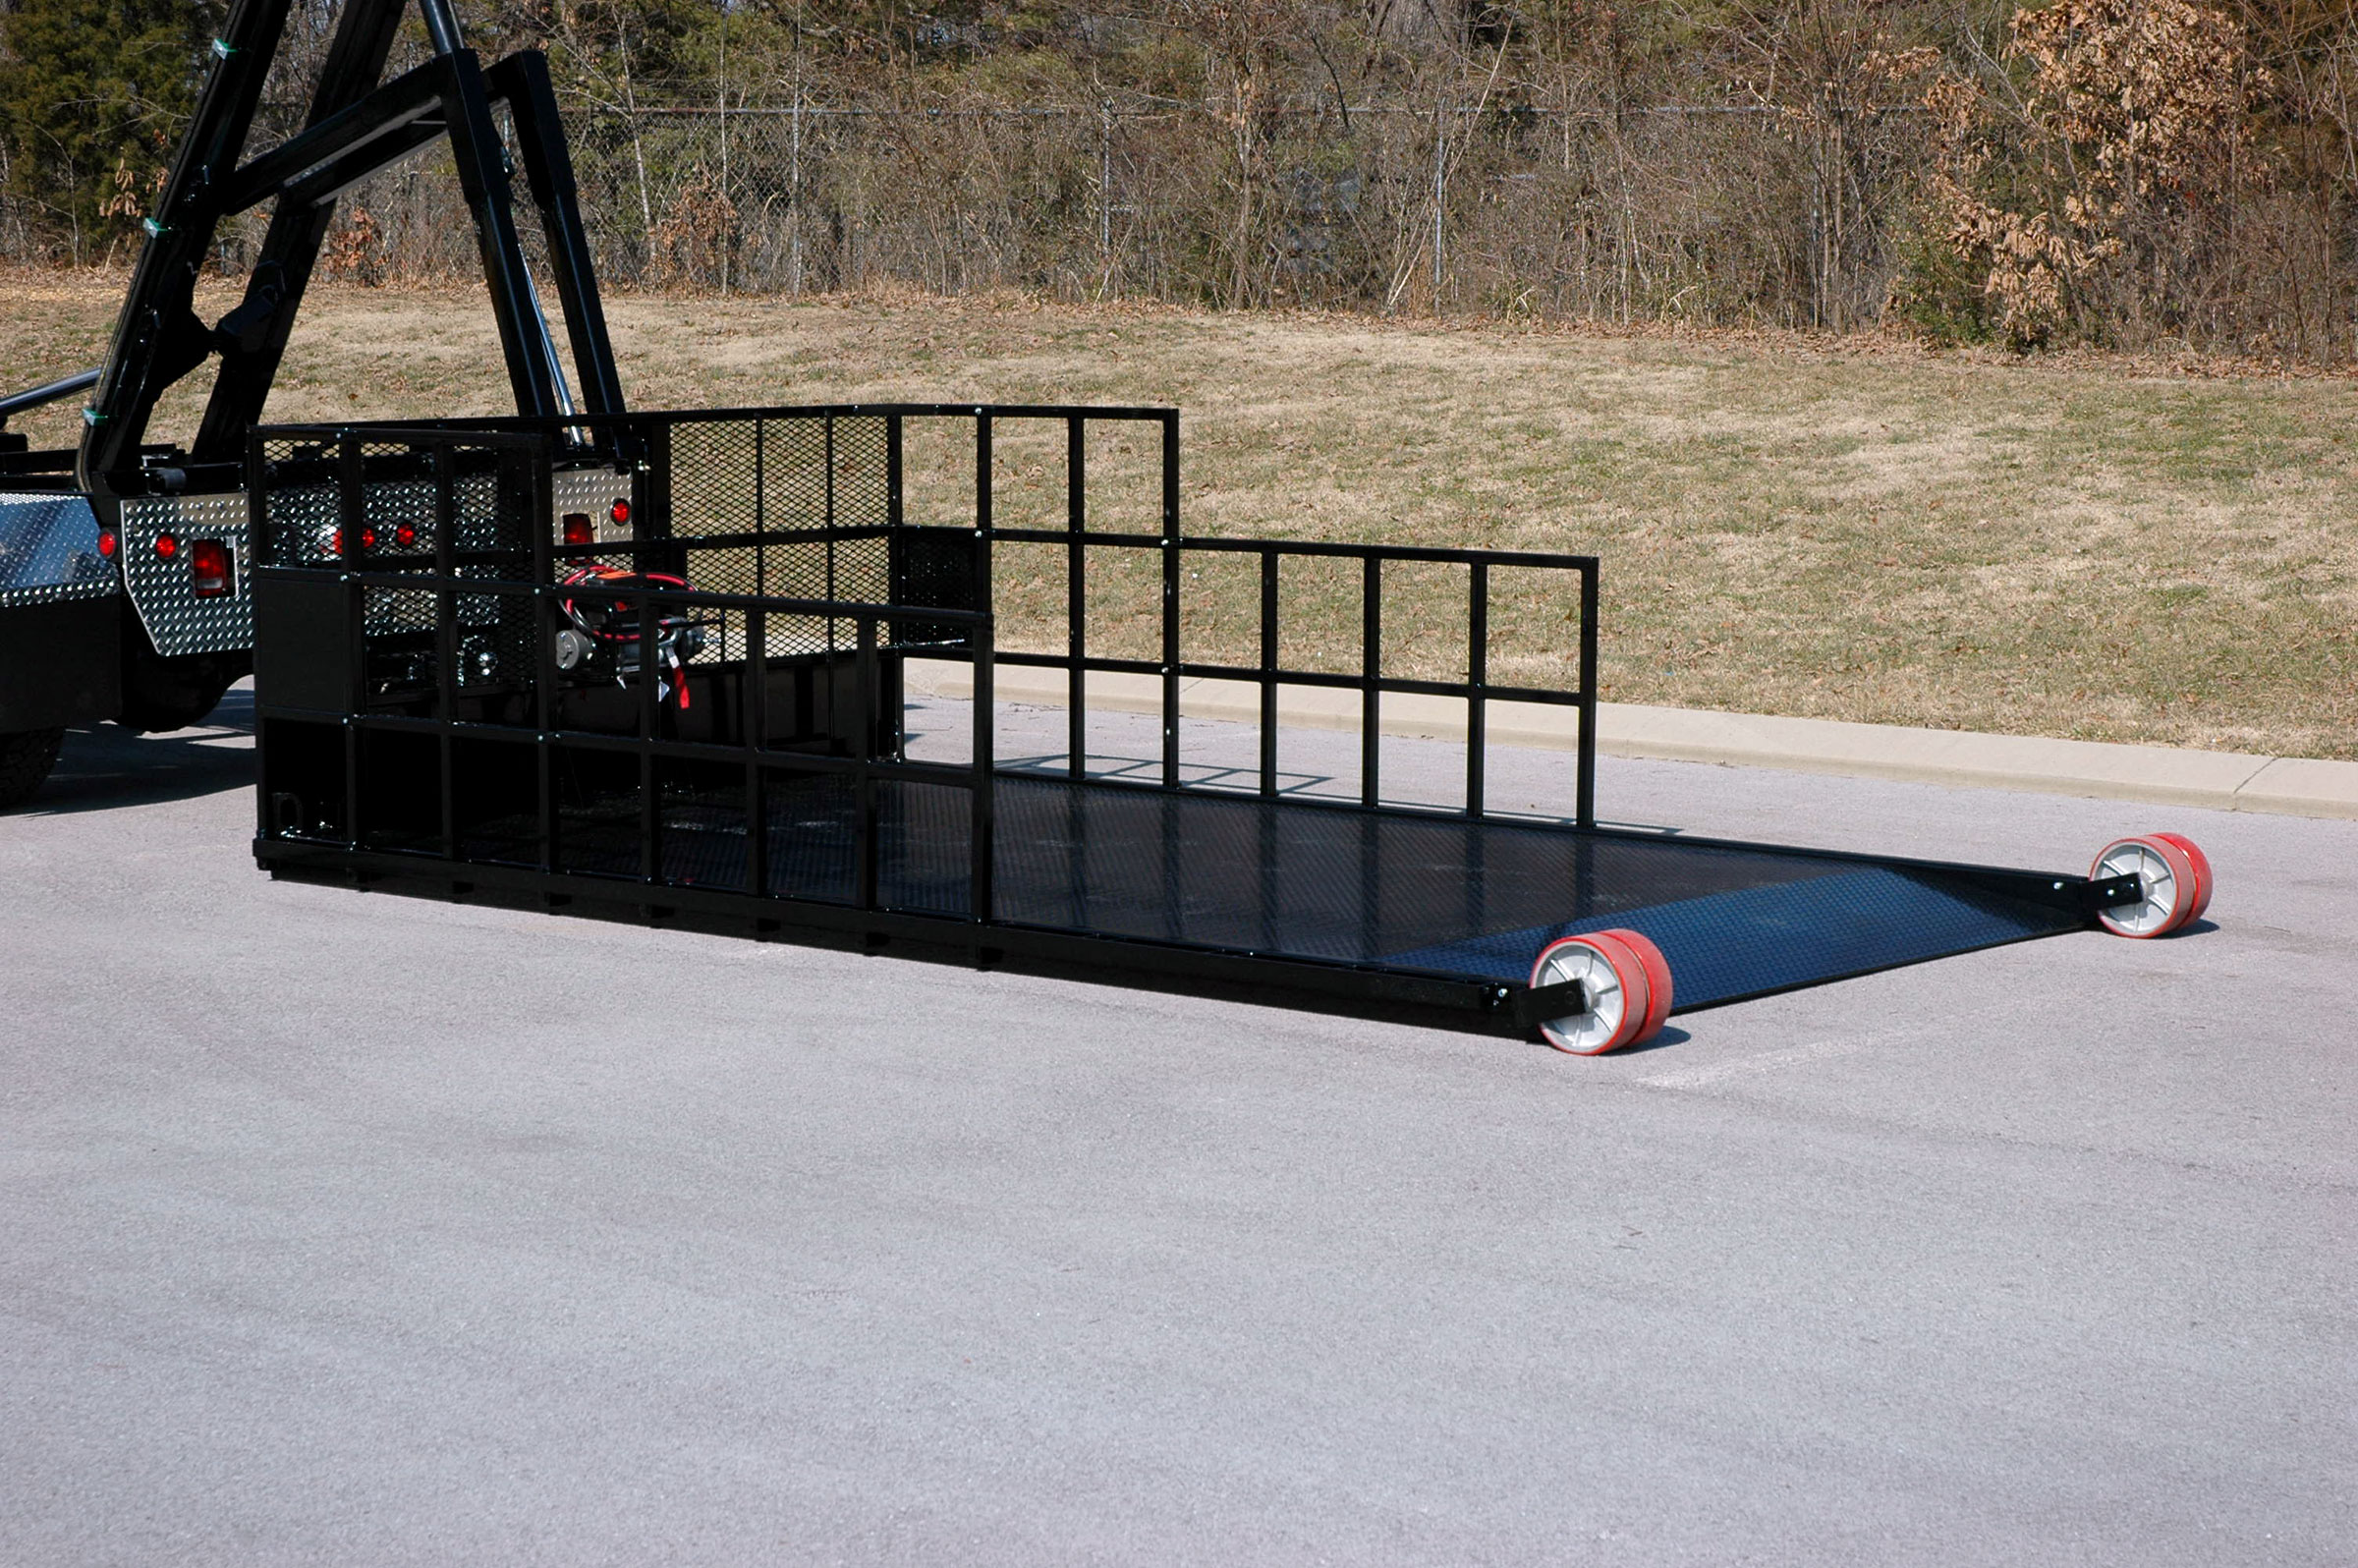 Special Transport Titan Flatbed, Roll-Off, rollback, rental, equipment hauler, construction